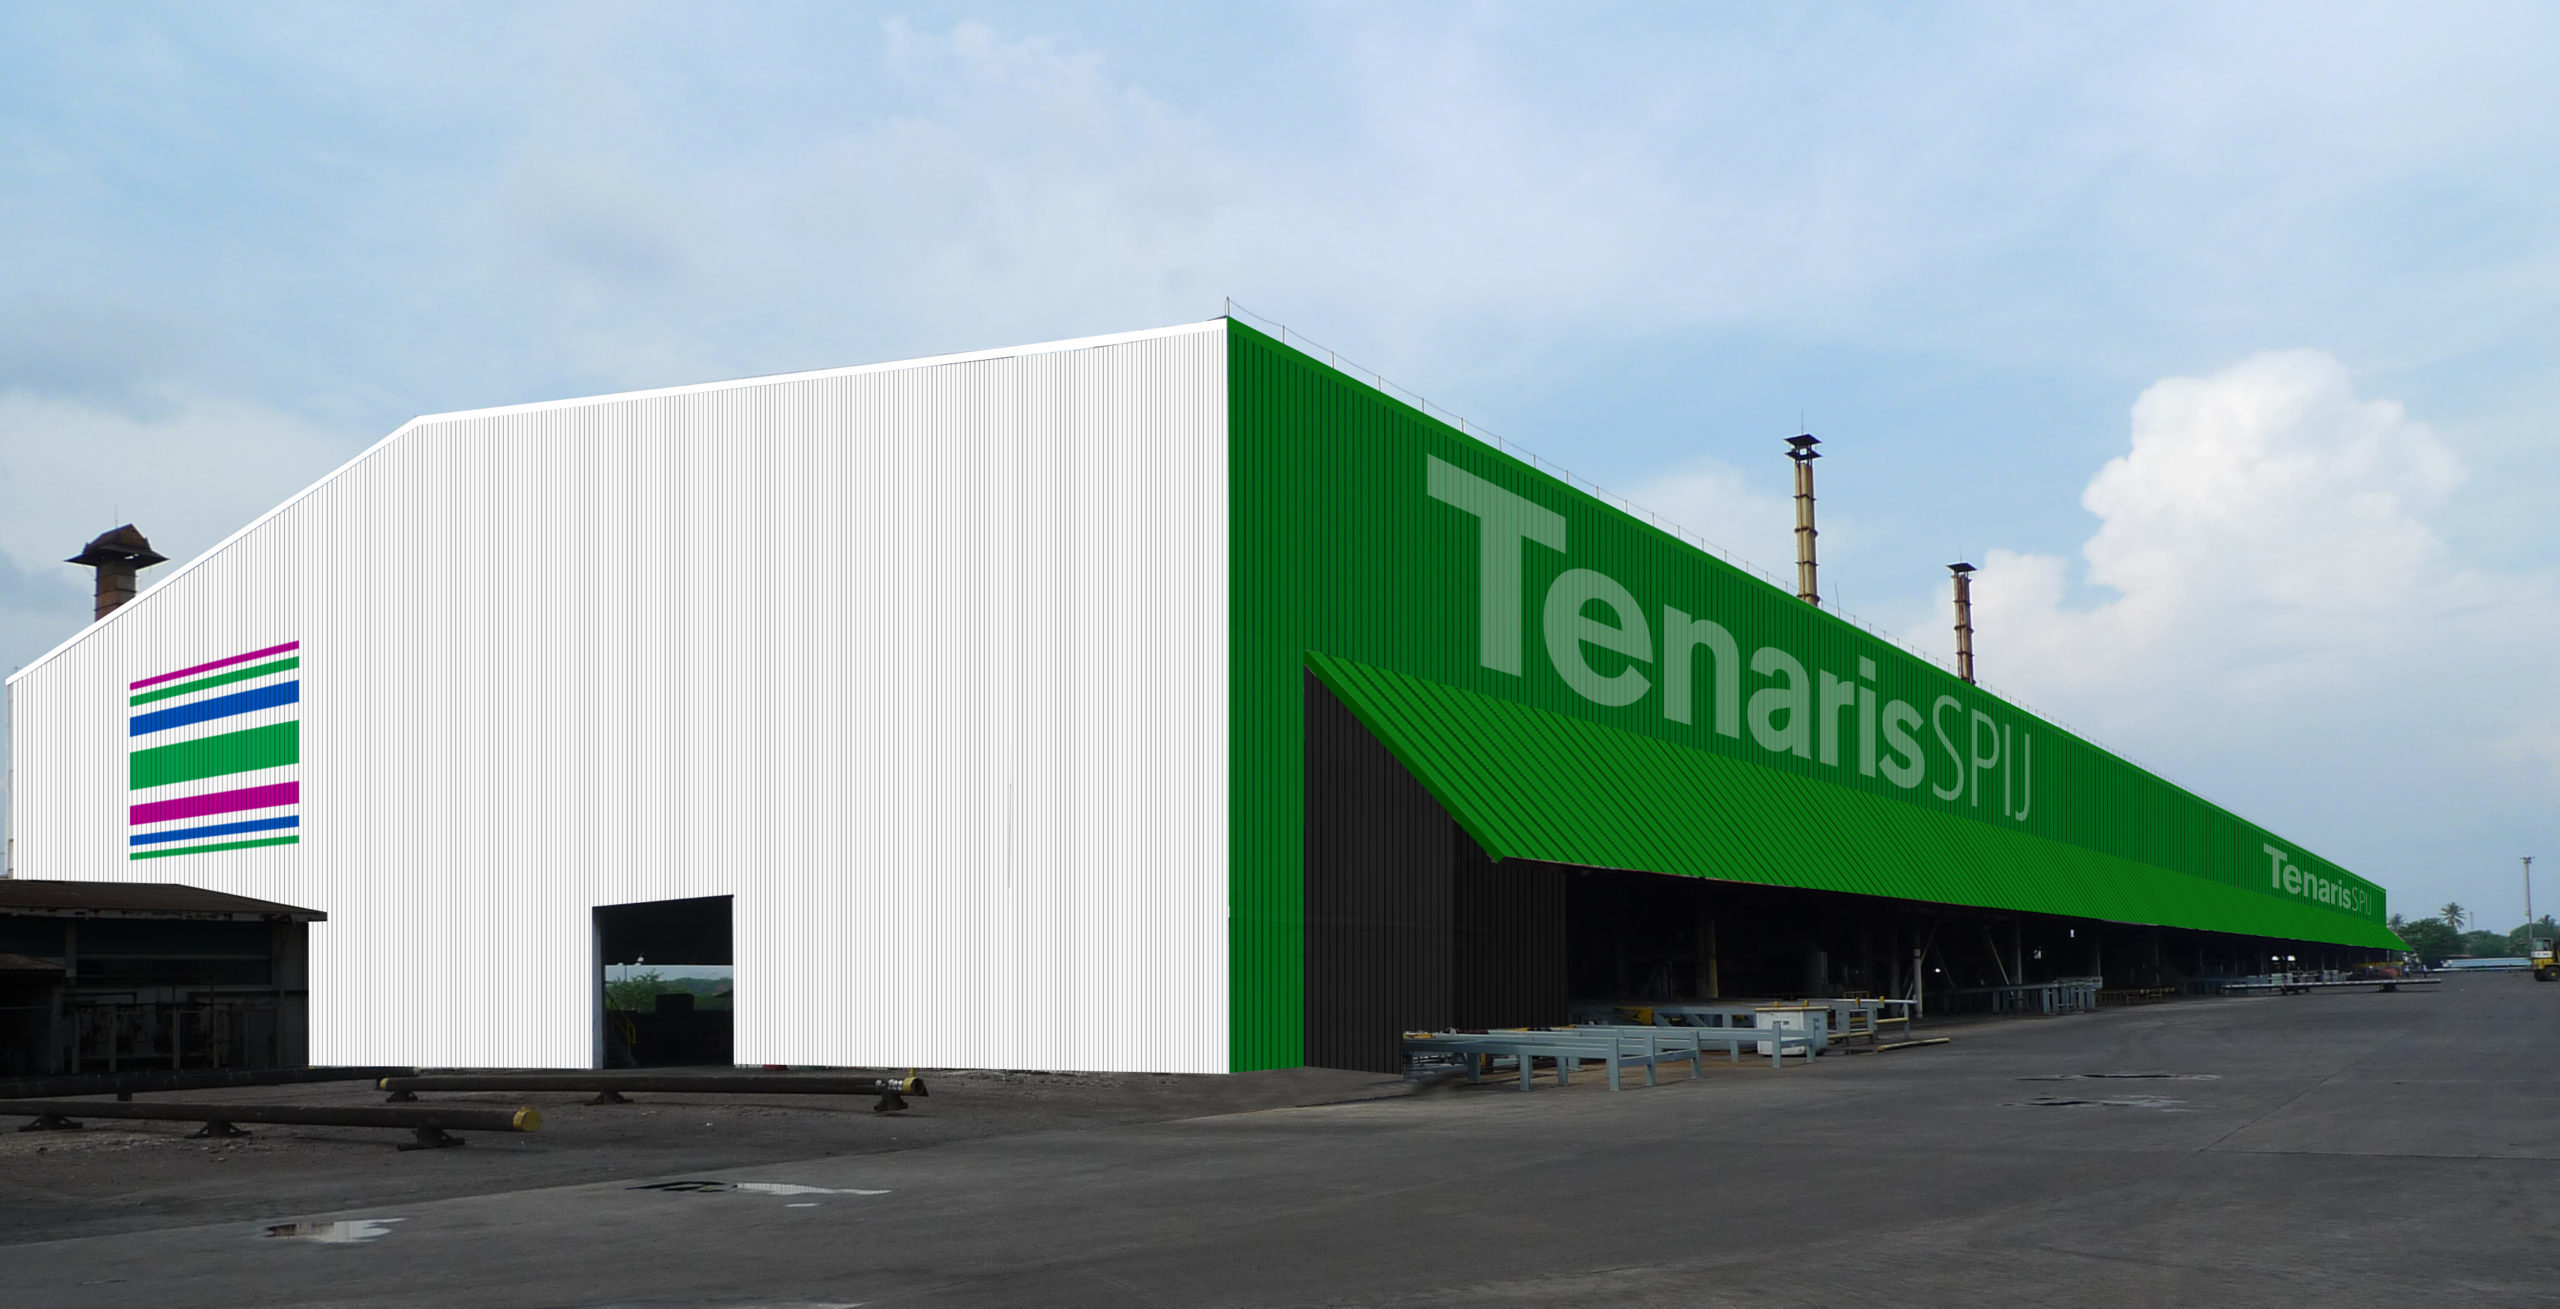 Tenaris SPIJ Industrial Plant in Cilegon, Indonesia. Signing